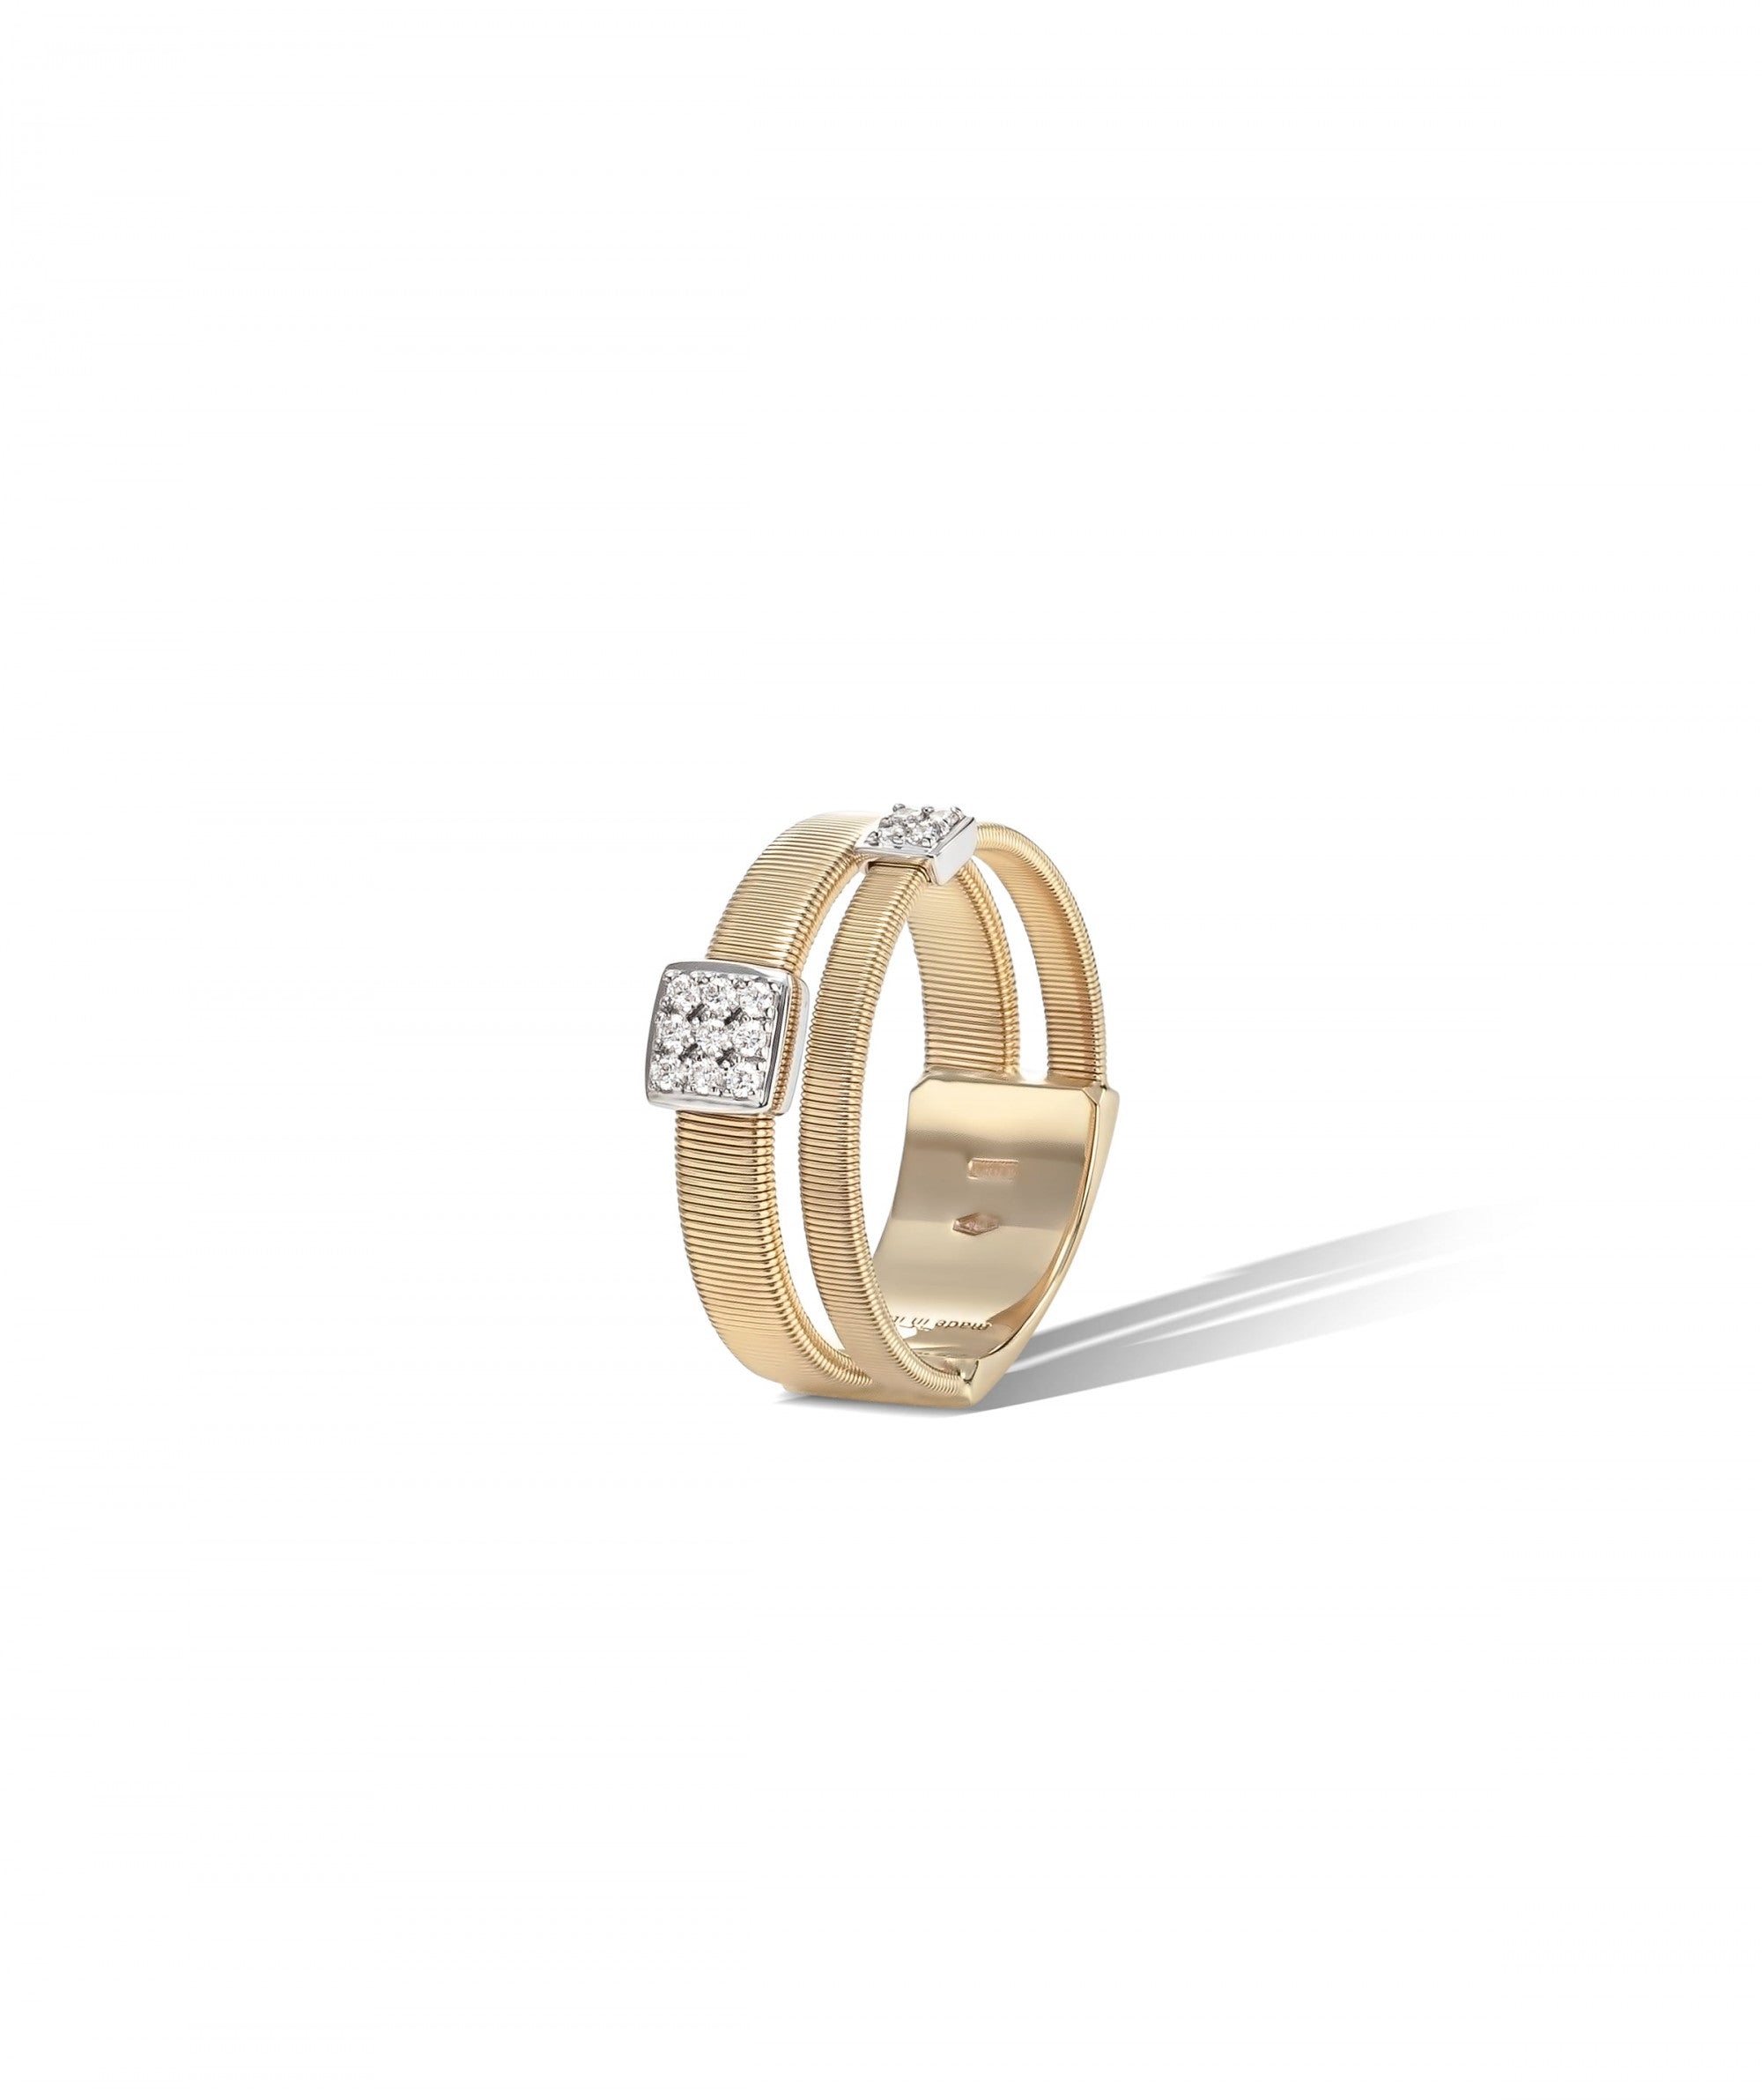 Masai Ring in 18k Yellow Gold with Pave Diamonds Double Band - Orsini Jewellers NZ